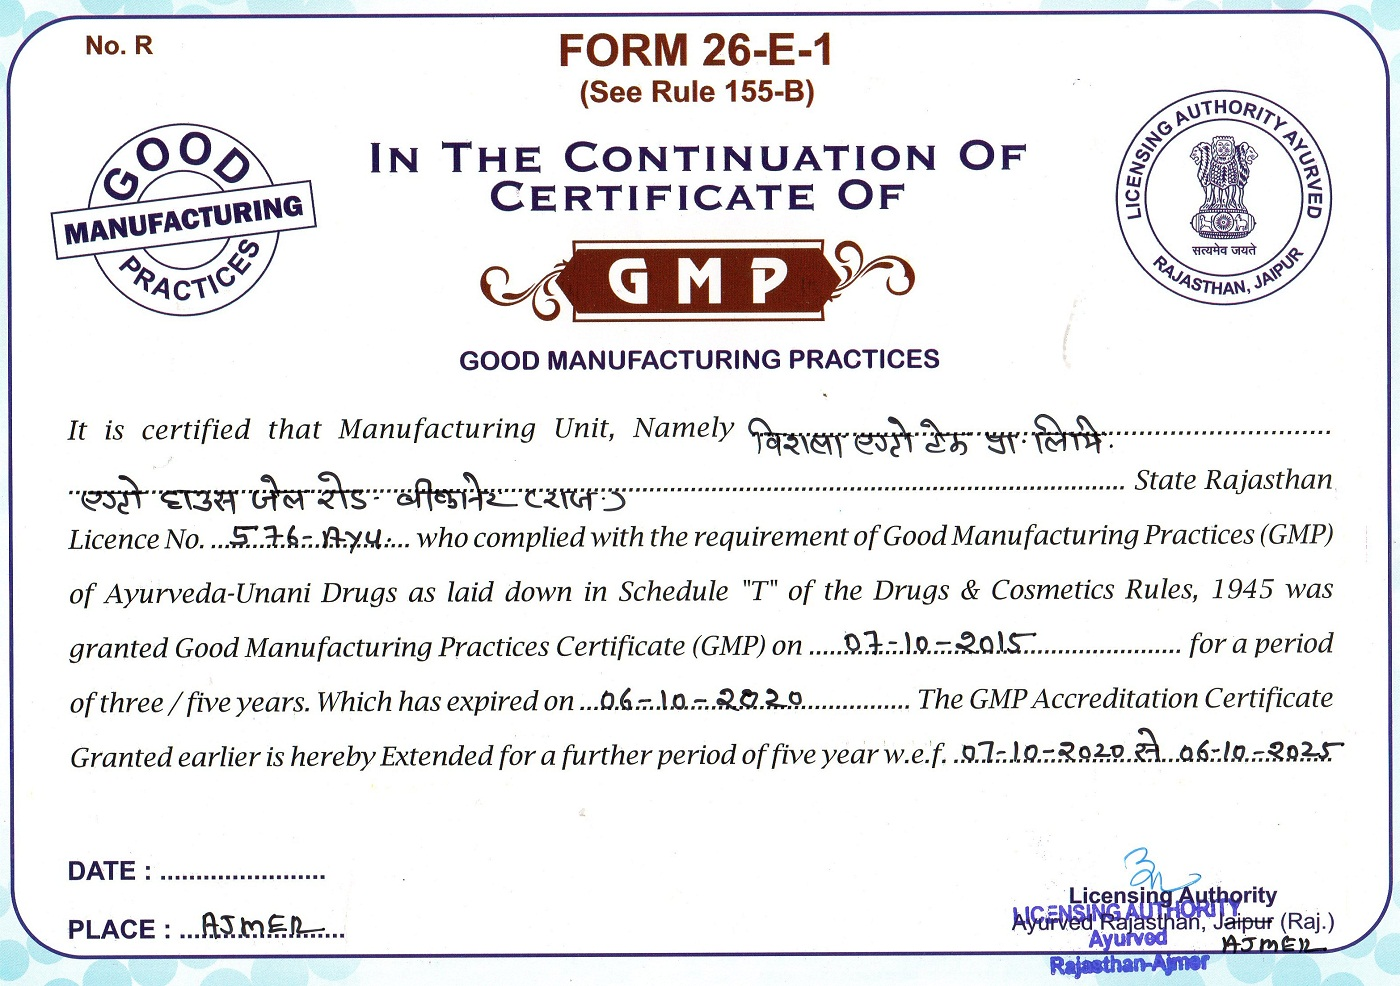 form-26-E-1-certificate-of-GMP-vishla-agrotech-1